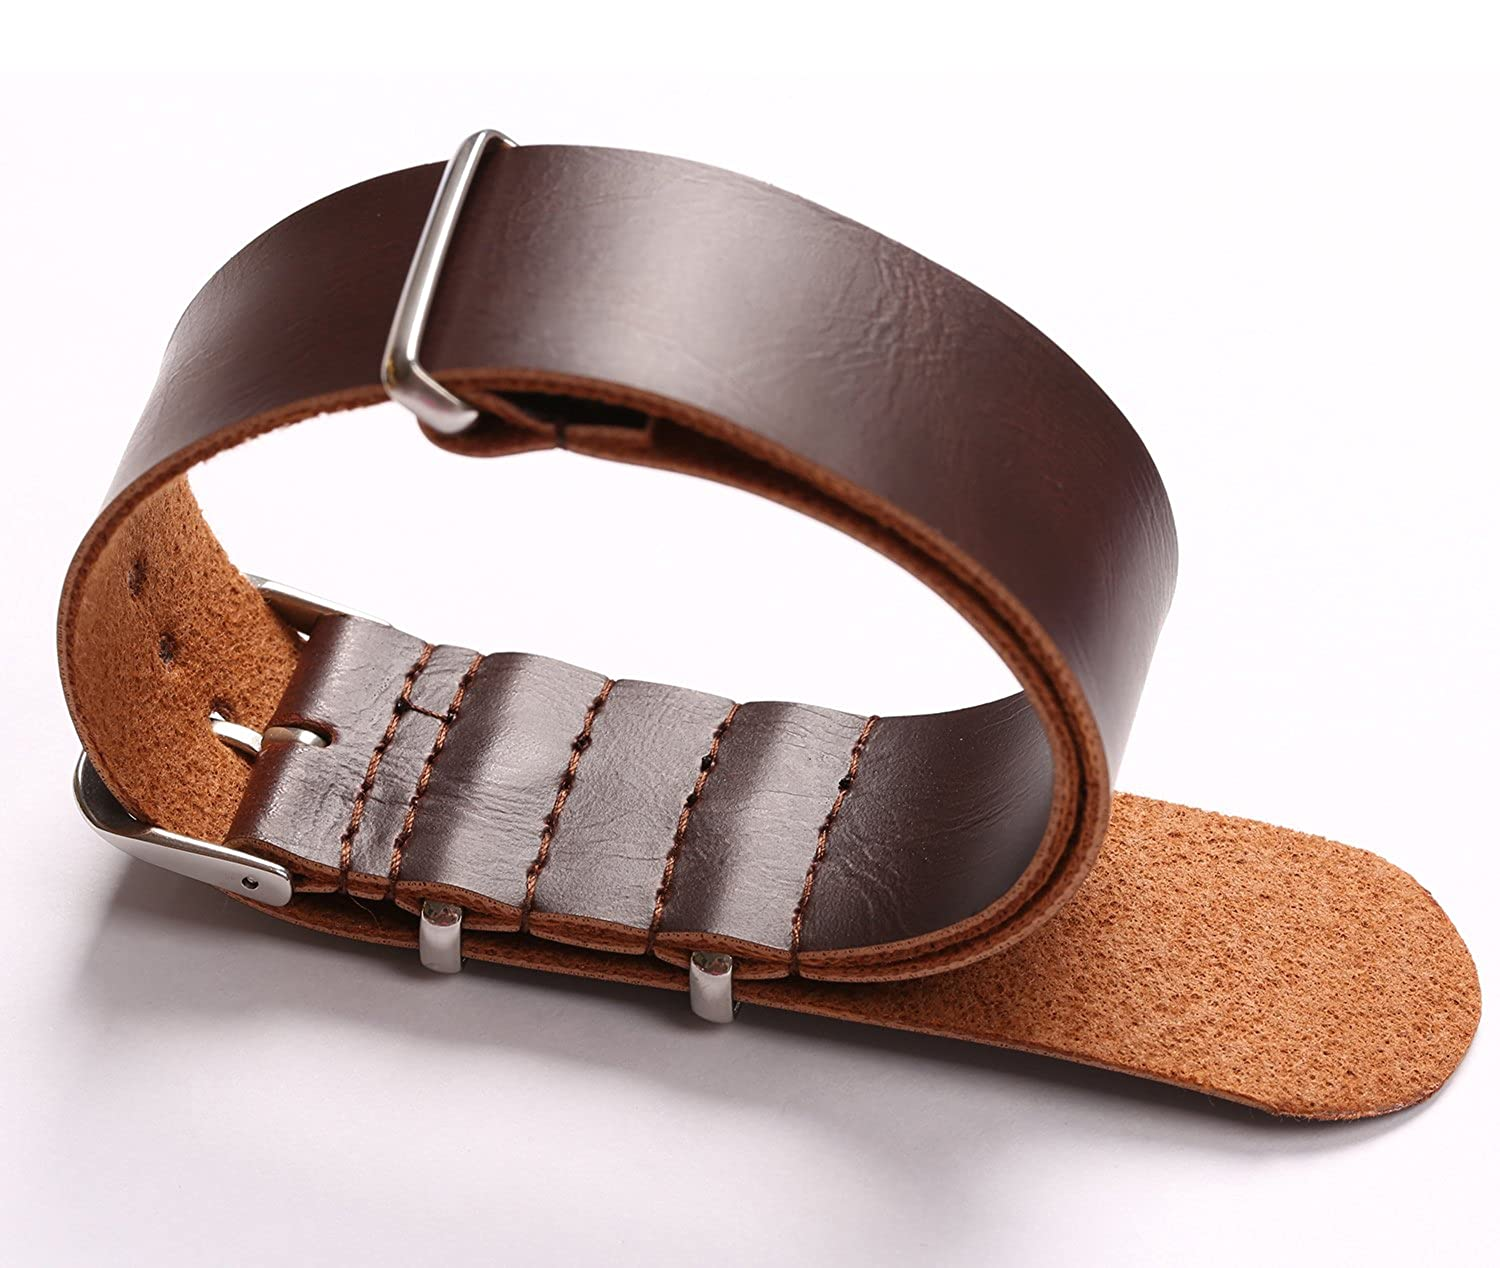 Pasoy 22mm Watch Band Nato Watch Band Mens Brown Synthetic Leather Military Strap Bands Watchbands 22 Mm by Pasoy